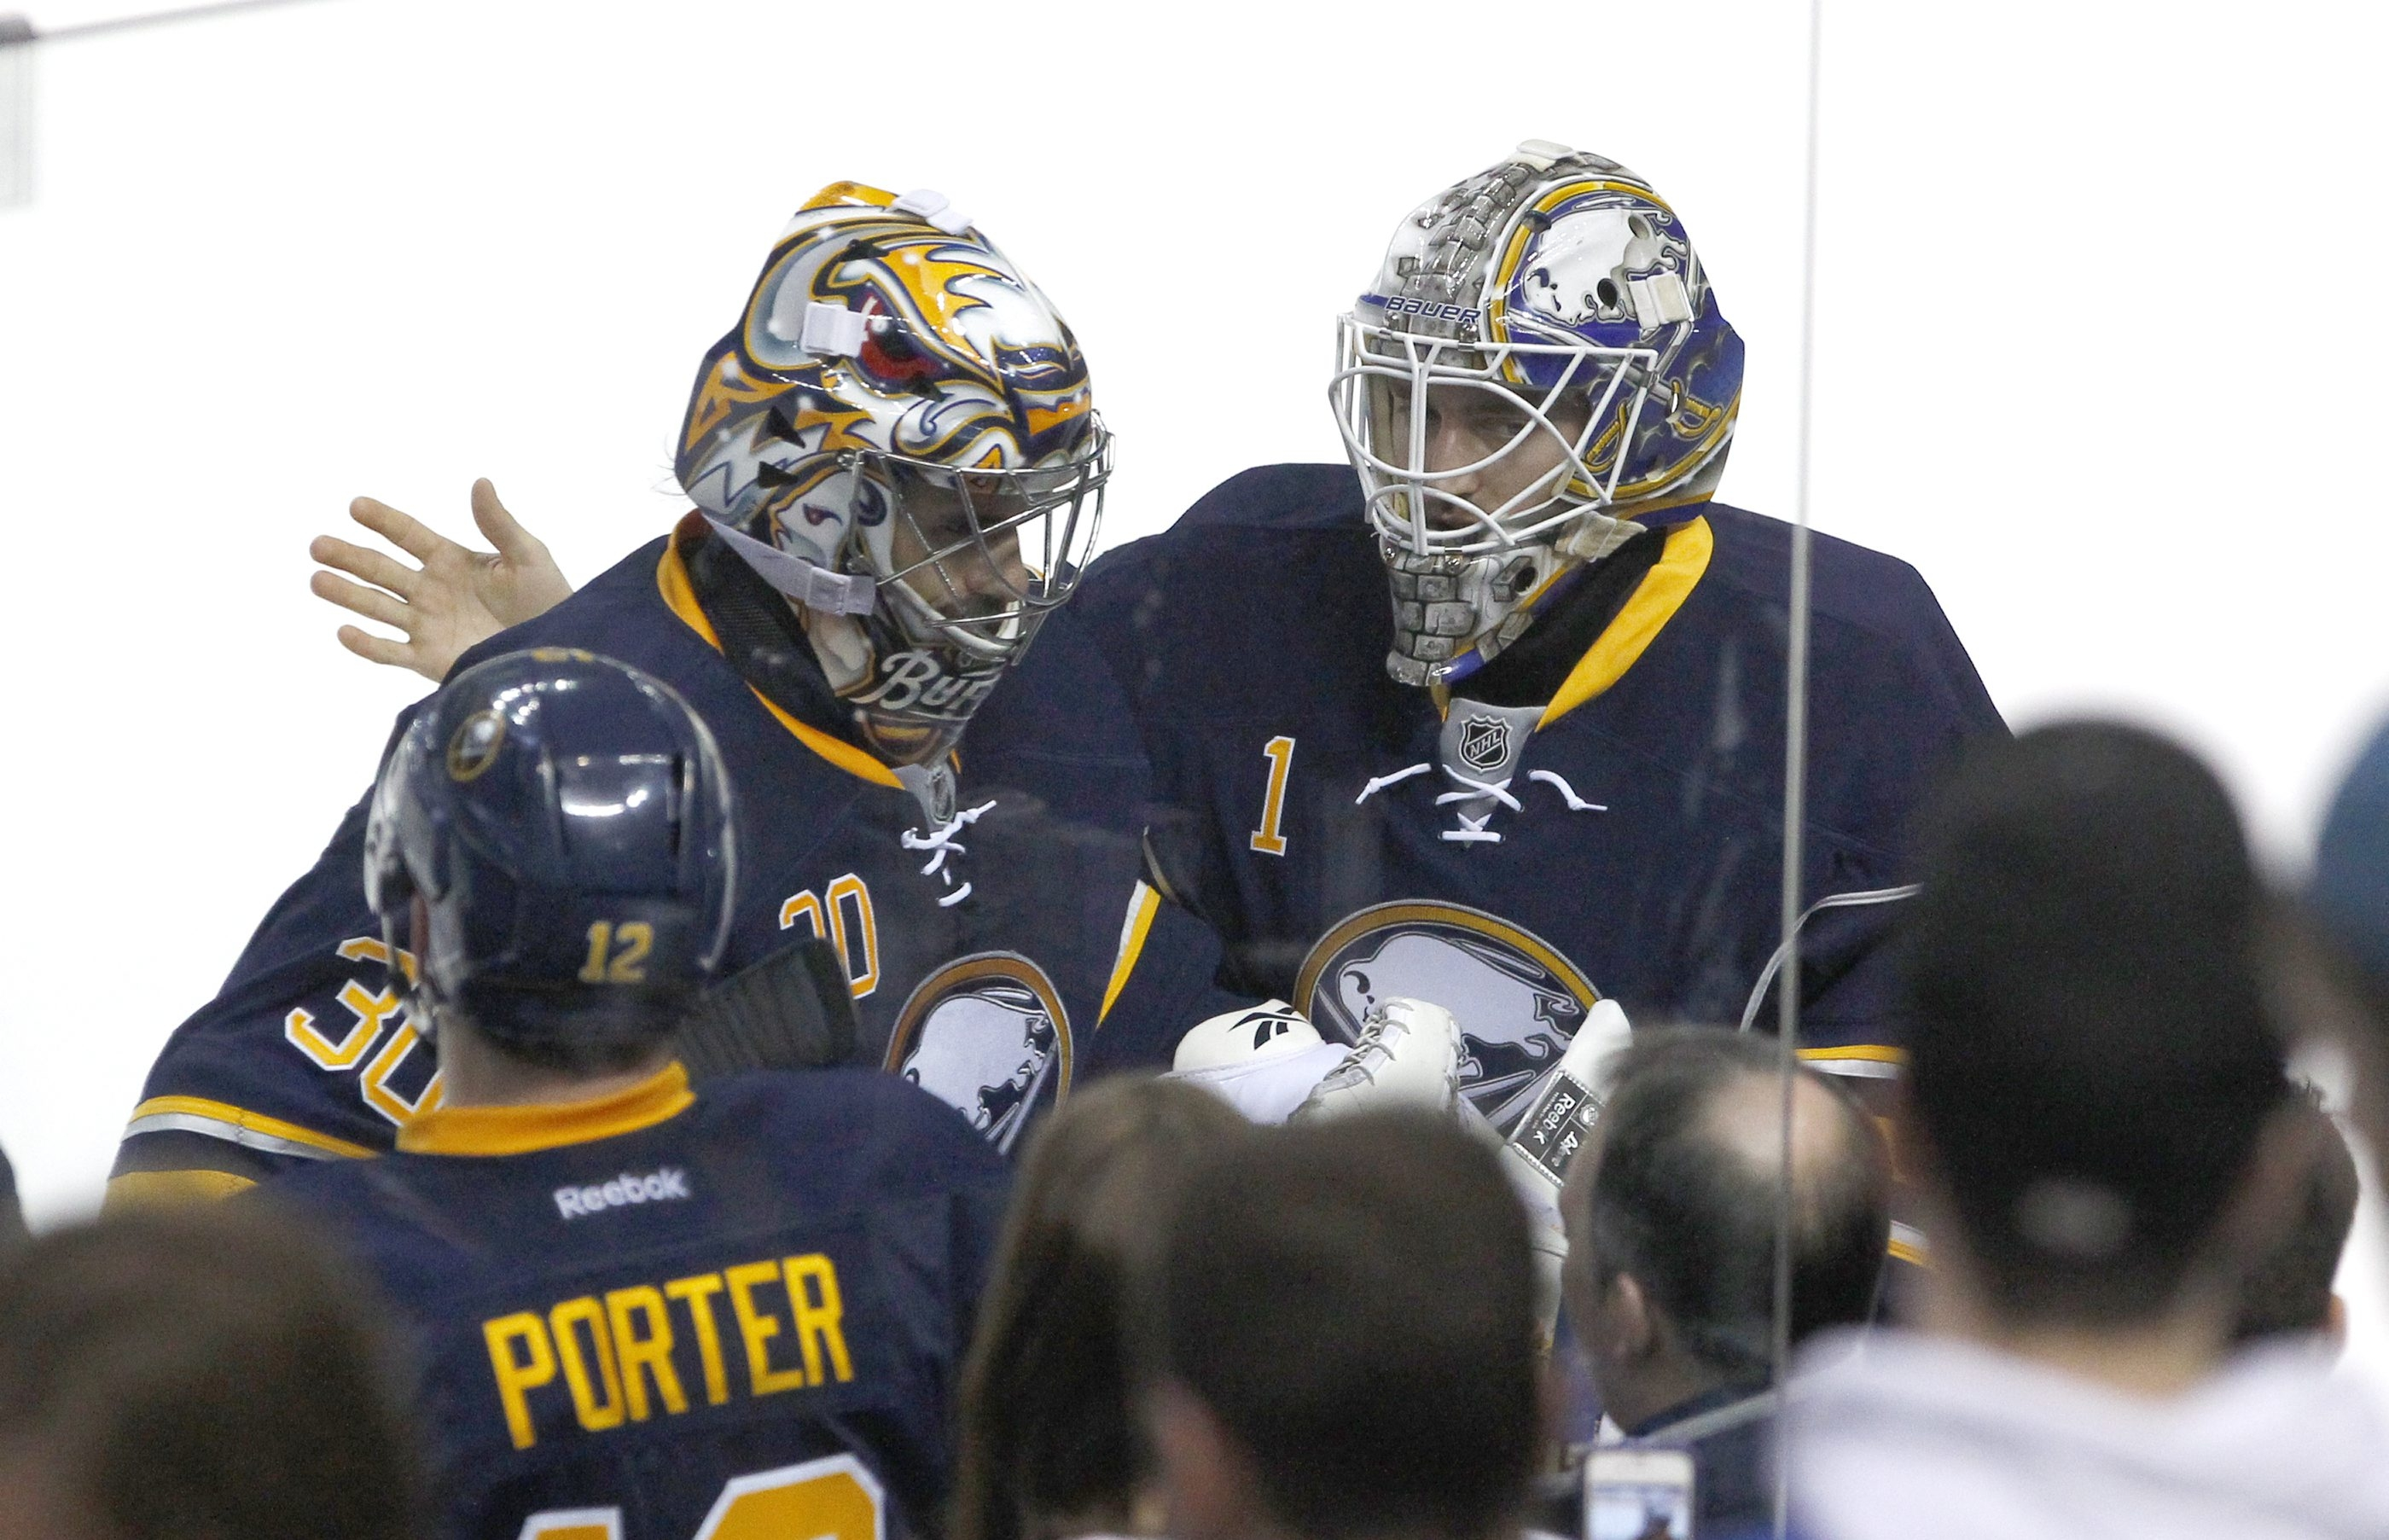 Sabres goaltender Ryan Miller, left, is patted on the back by Jhonas Enroth after Miller was pulled in the second period against the Rangers on Friday.